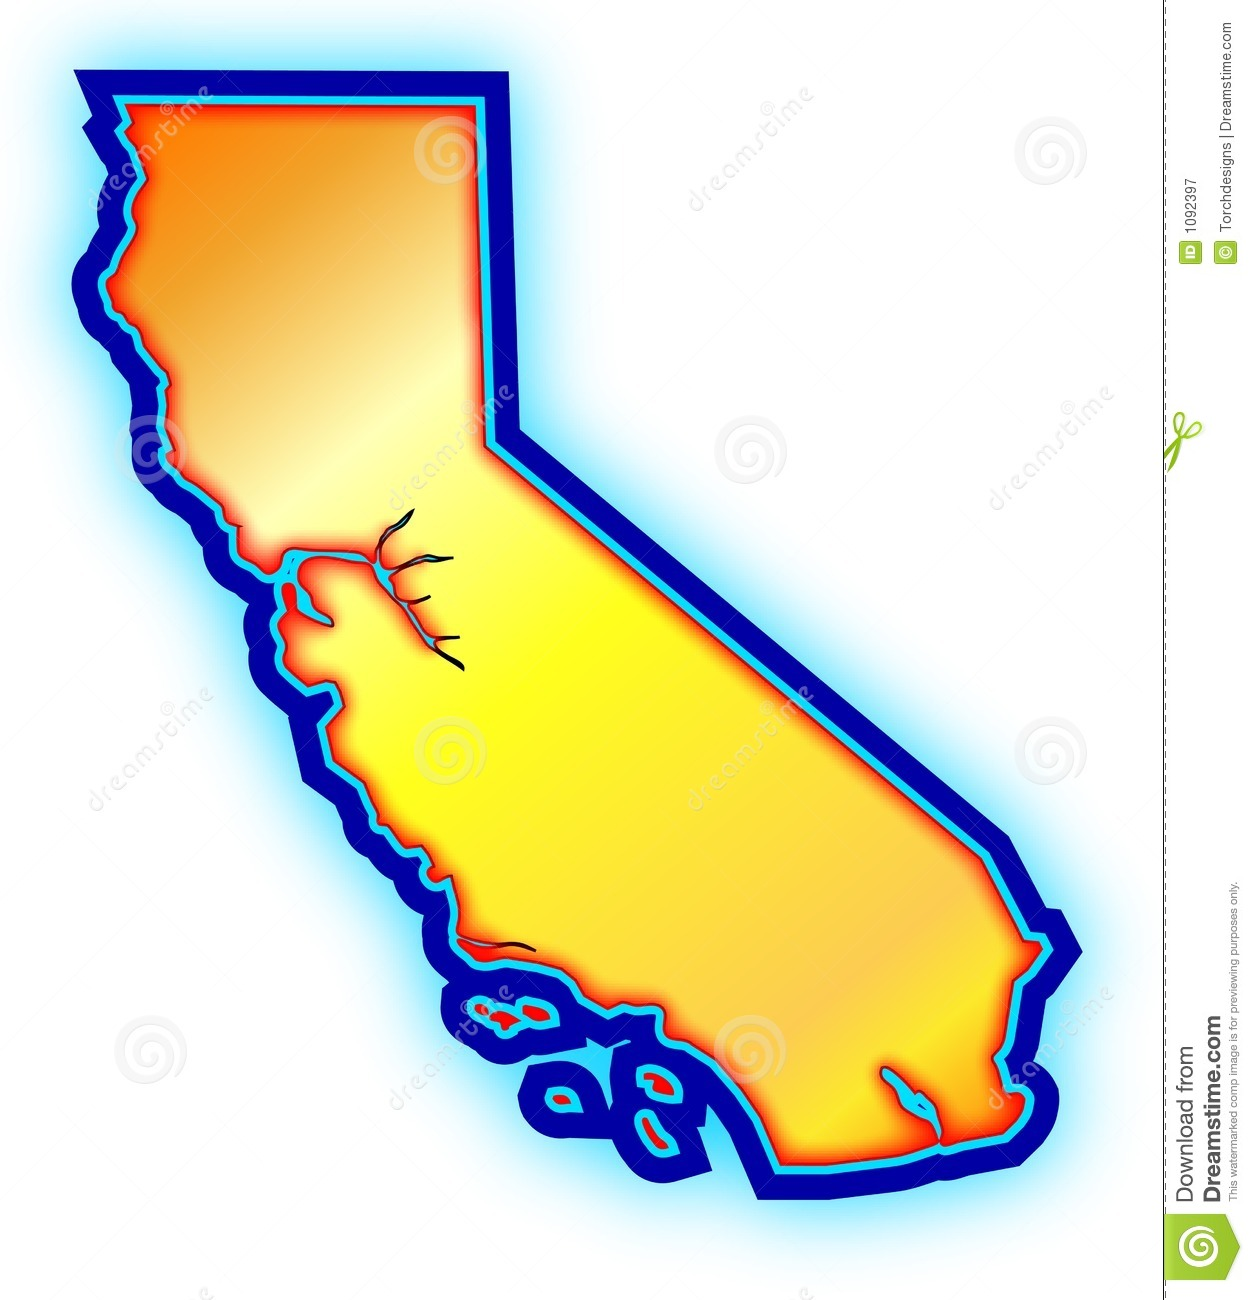 clip art california map - photo #38